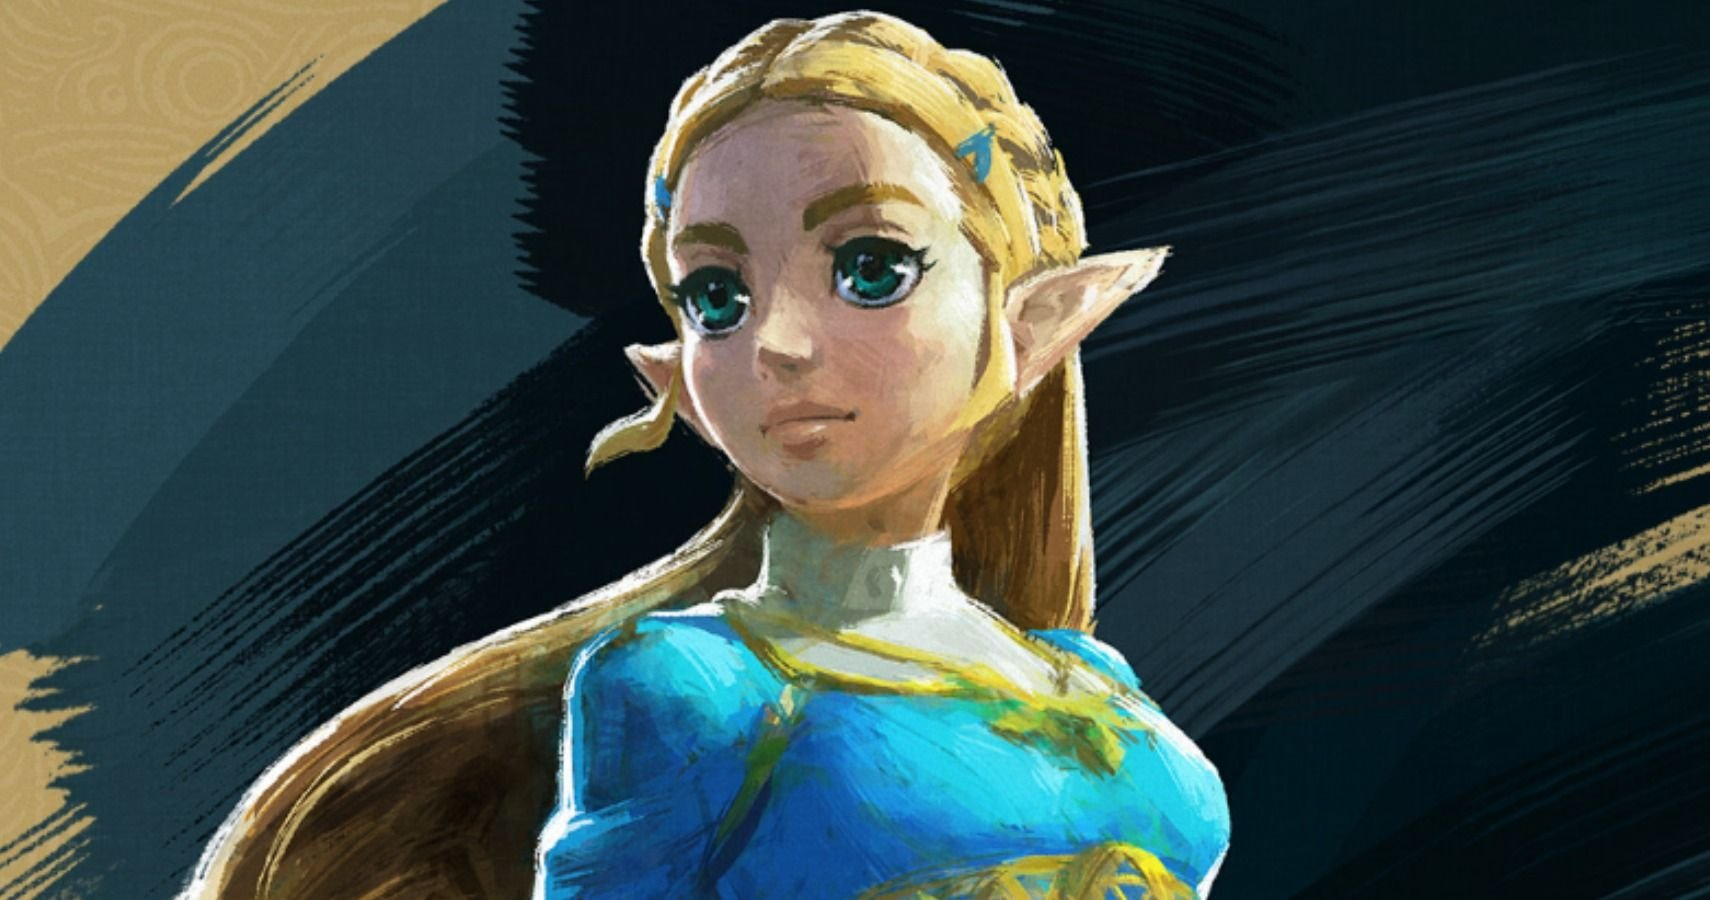 Breath of The Wild 2 Needs To Make Zelda More Than A Damsel In Distress